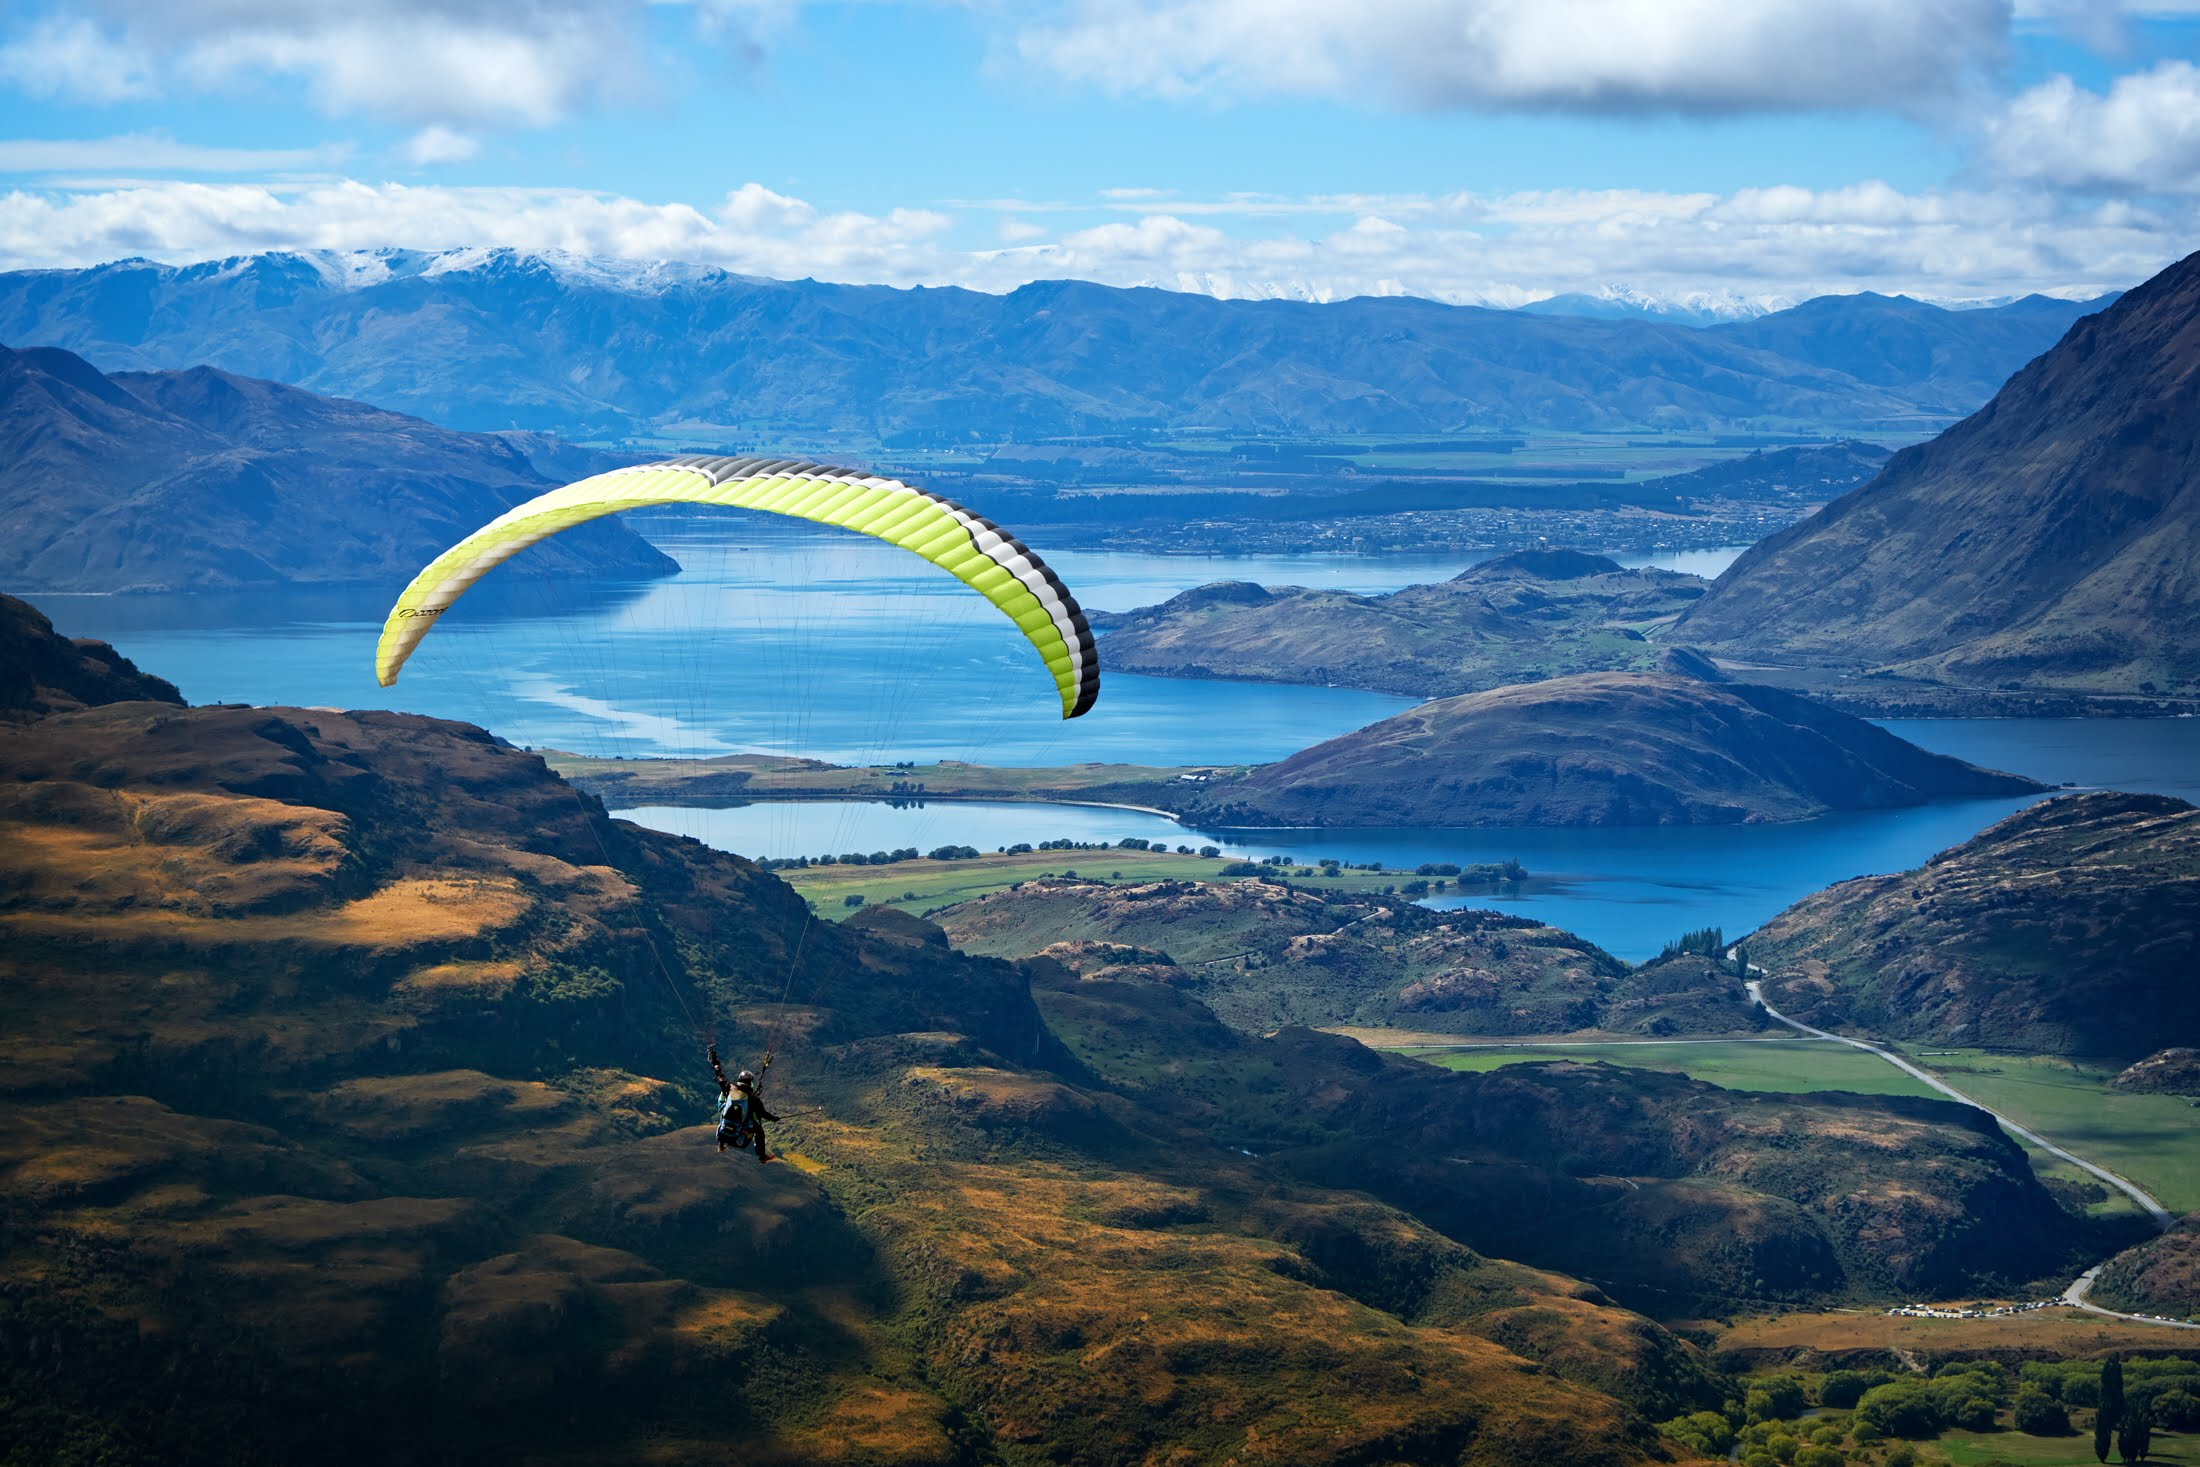 Our Mountain - We fly from Pub Corner, on the road going up to Treble Cone ski field. Our launch is 800m above the valley and is the highest summertime tandem flight in New Zealand.You will experience beautiful views of Lake Wanaka, Roys Peak, and the Matukituki Valley leading into Mt. Aspiring National Park.This flying site is one of the most spectacular in New Zealand and is the home to the NZ Paragliding Nationals.